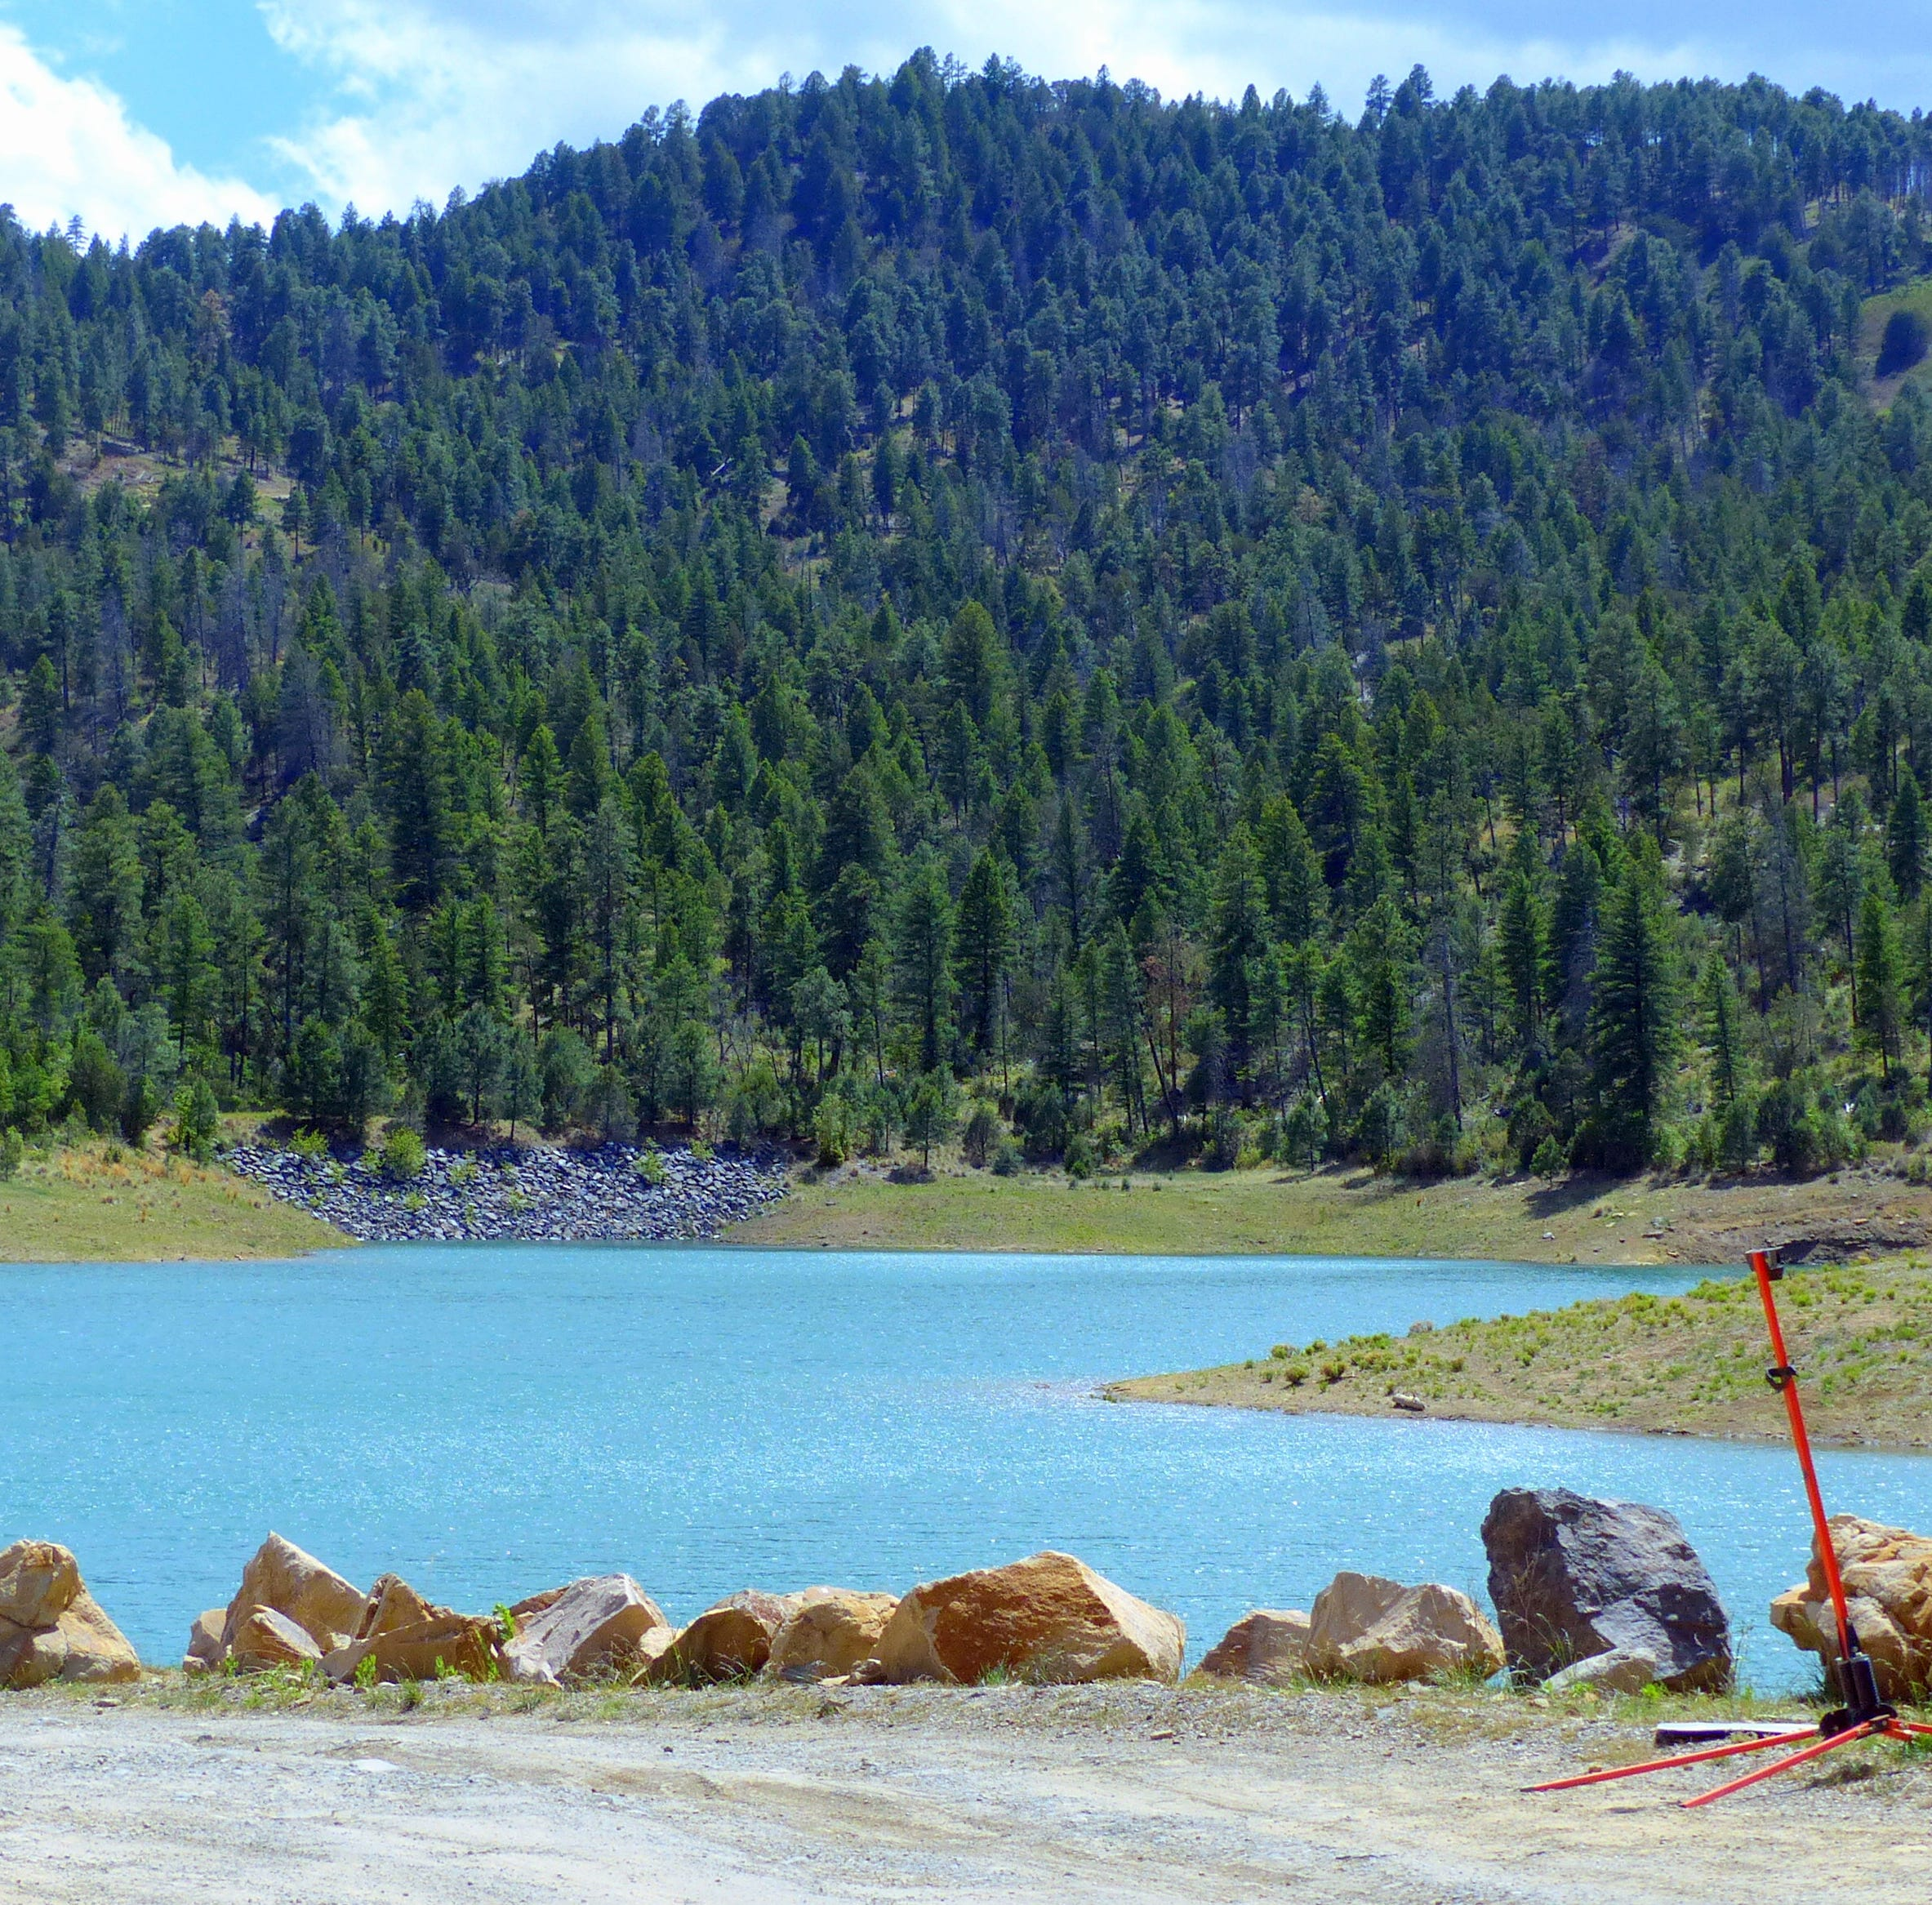 June targeted for completion of new campground at Grindstone Reservoir